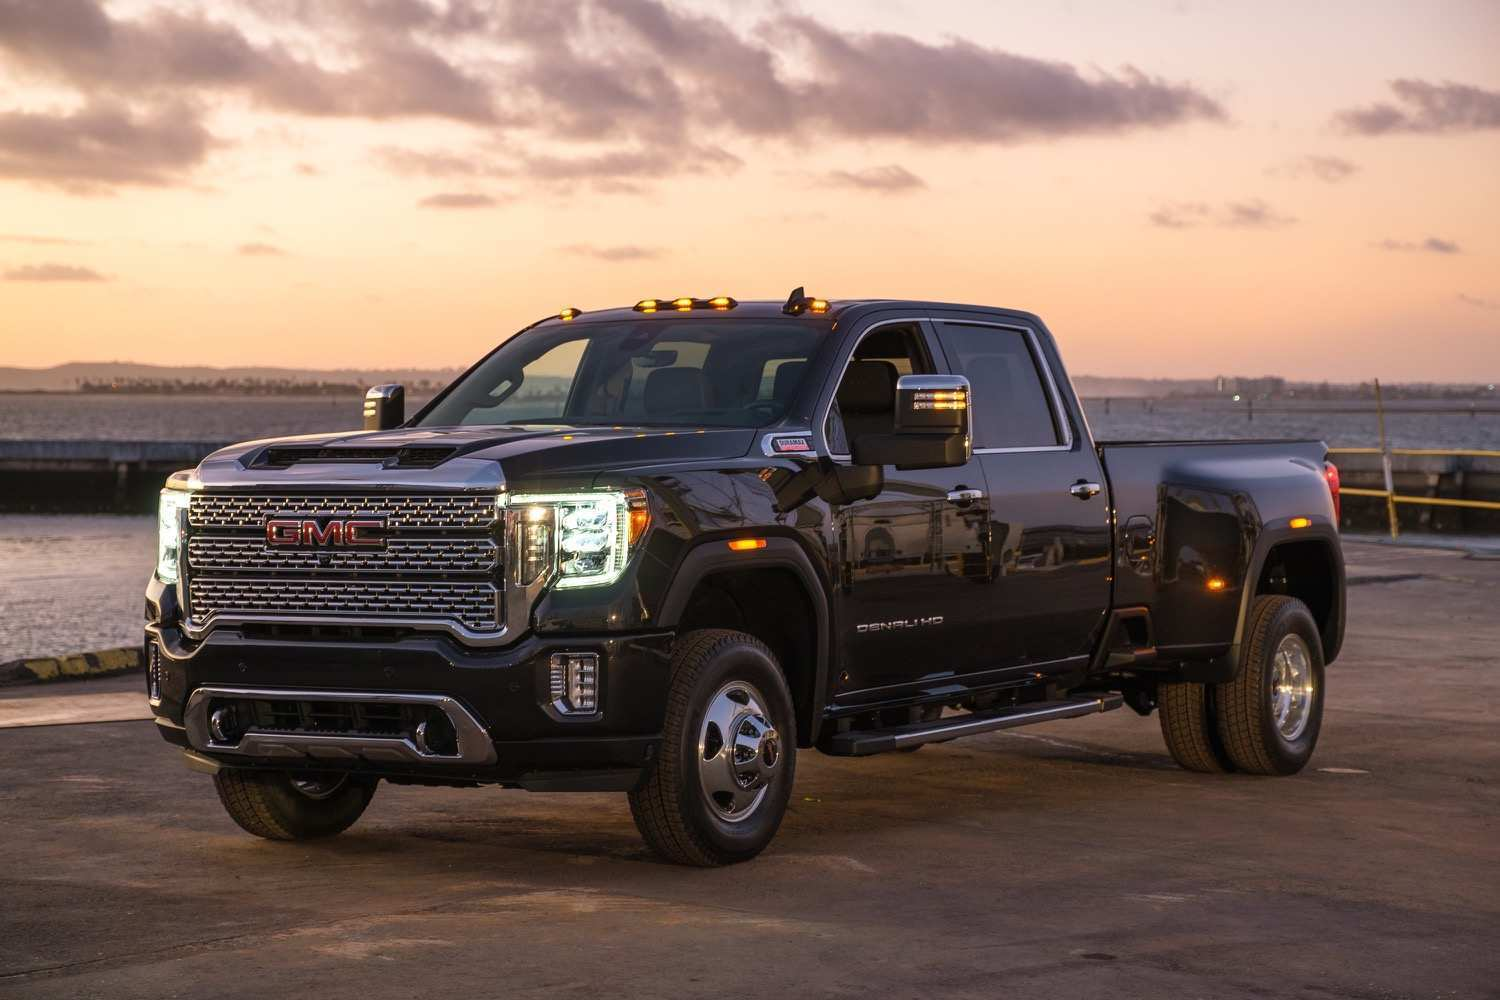 57 The 2020 Gmc Sierra Hd Denali Release